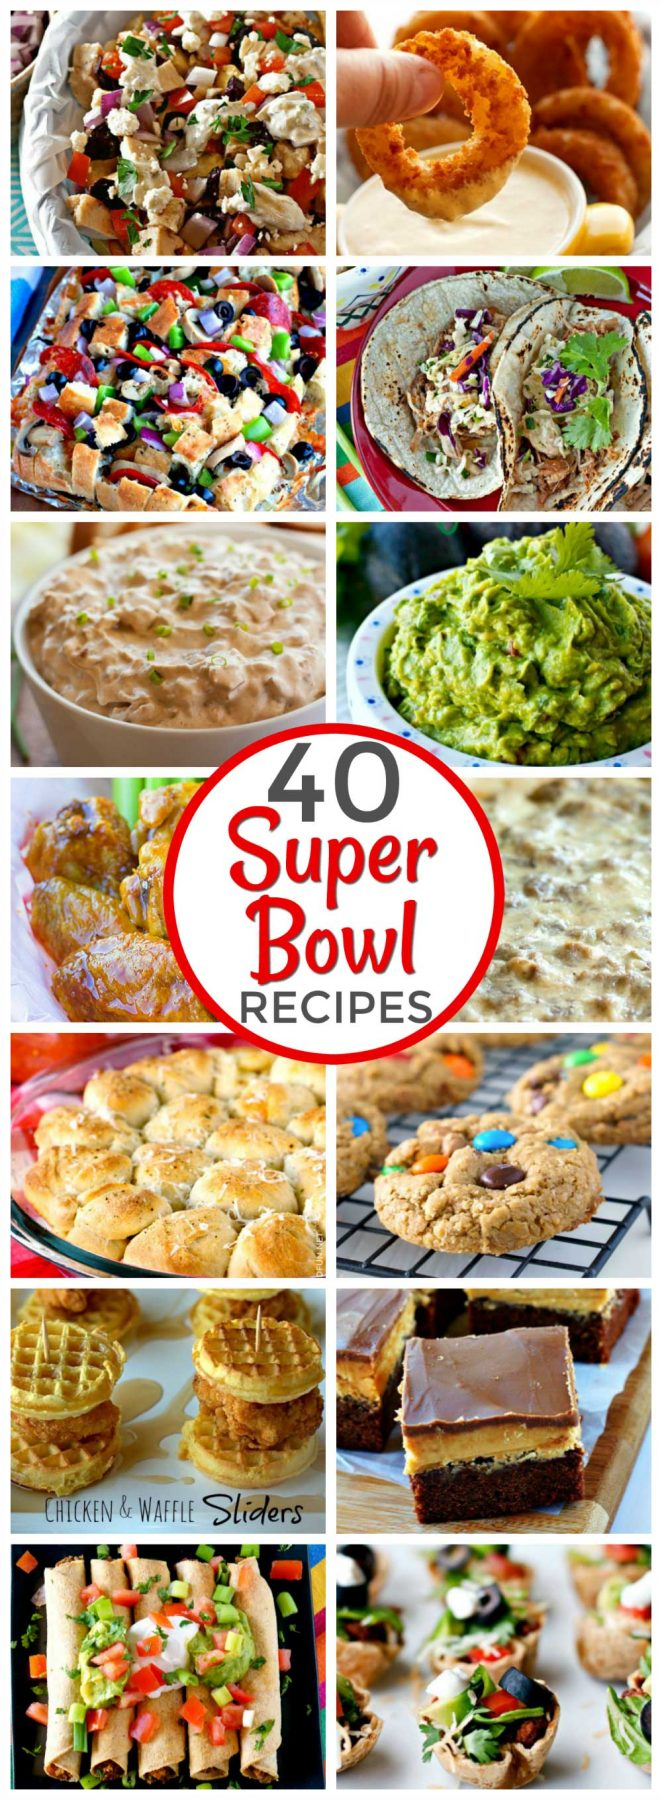 When it comes to game day, you can't lose with easy, hearty, comfort food. Your crowd will cheer for these recipes in this Super Bowl food roundup! via @foodfolksandfun